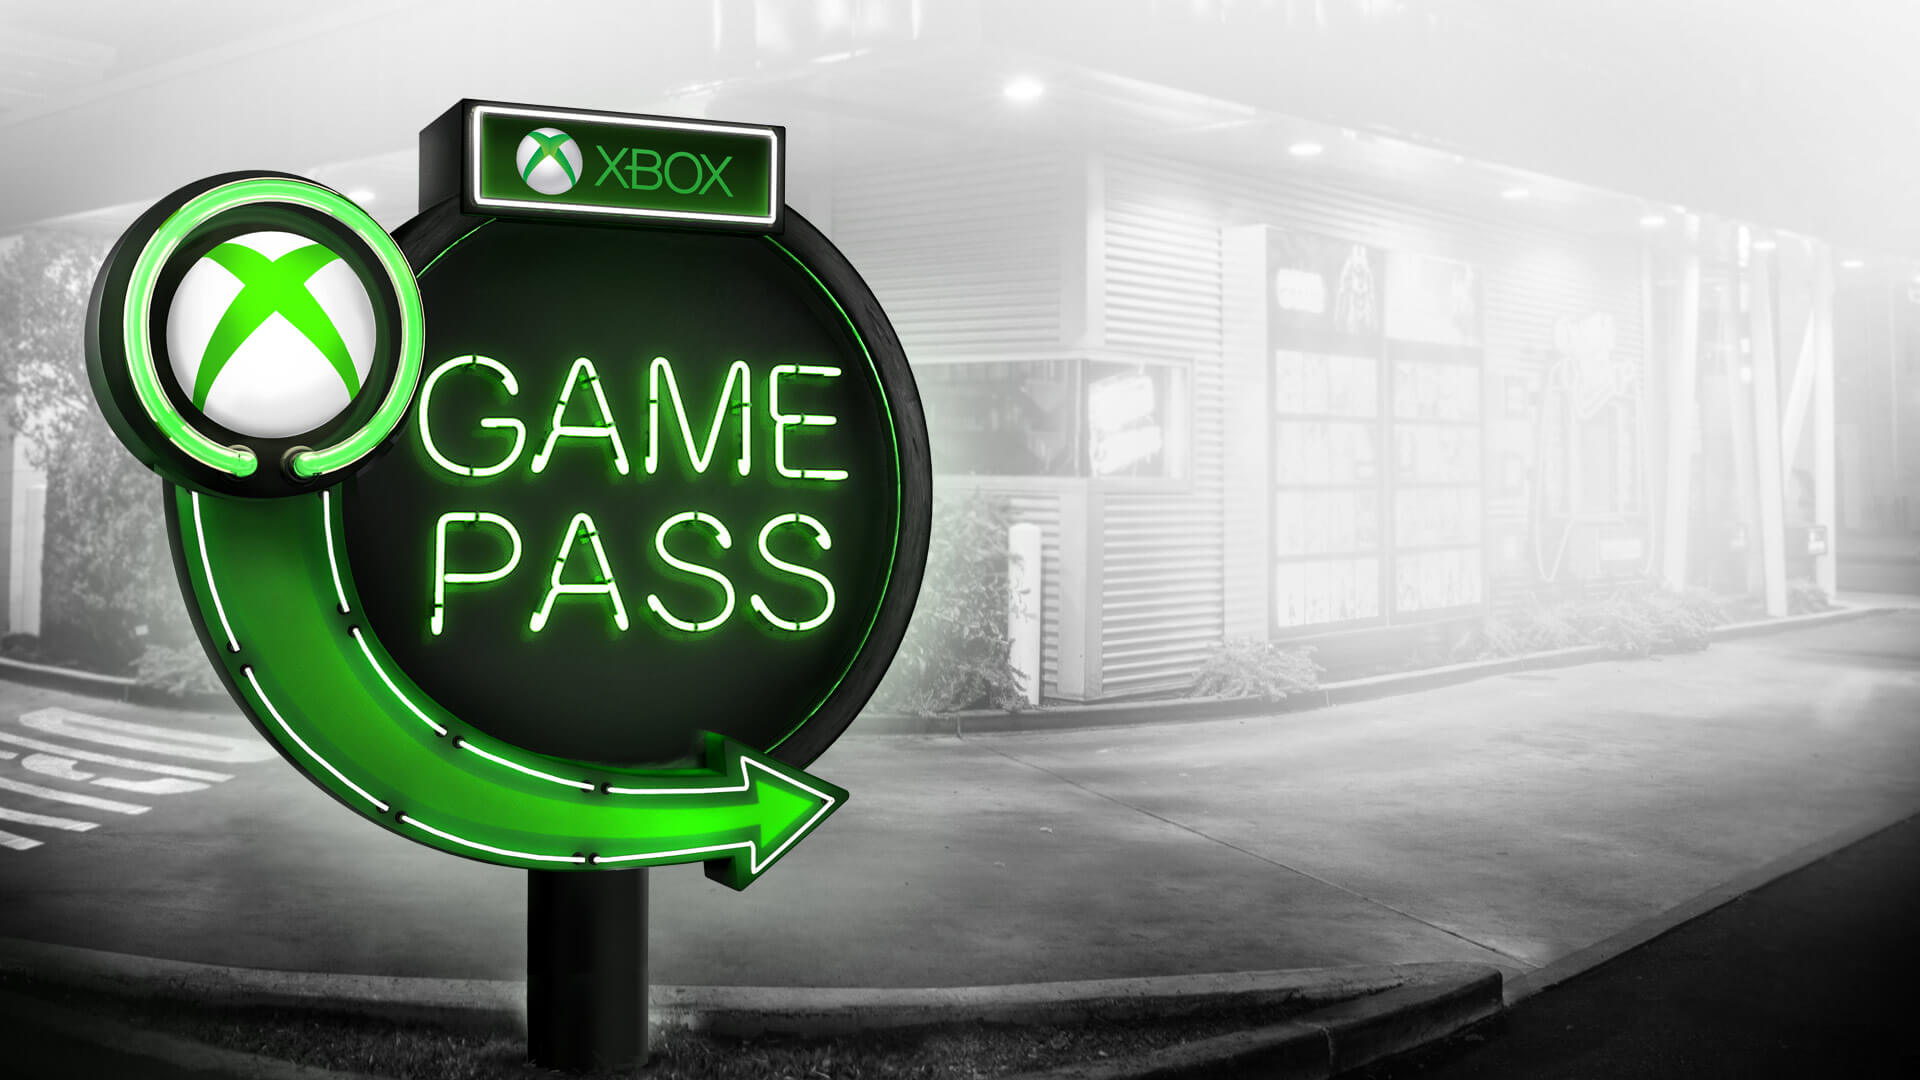 Microsoft Rewards: How To Get Xbox Game Pass and Xbox Live Gold For Free